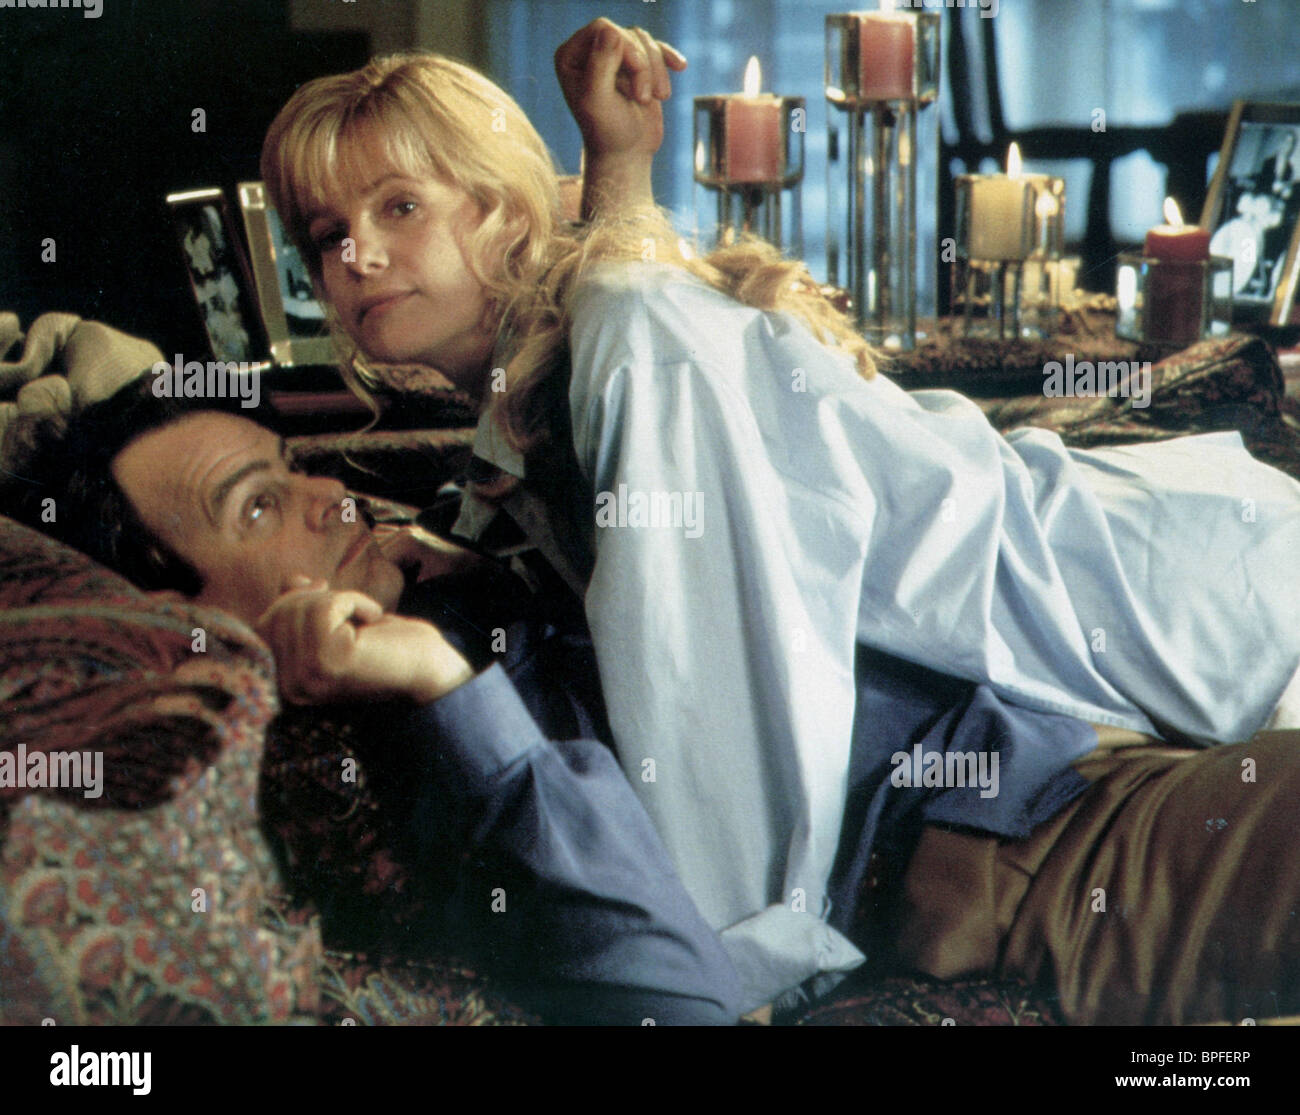 Dan Aykroyd & Bonnie Hunt Getting Away With Murder (1996)